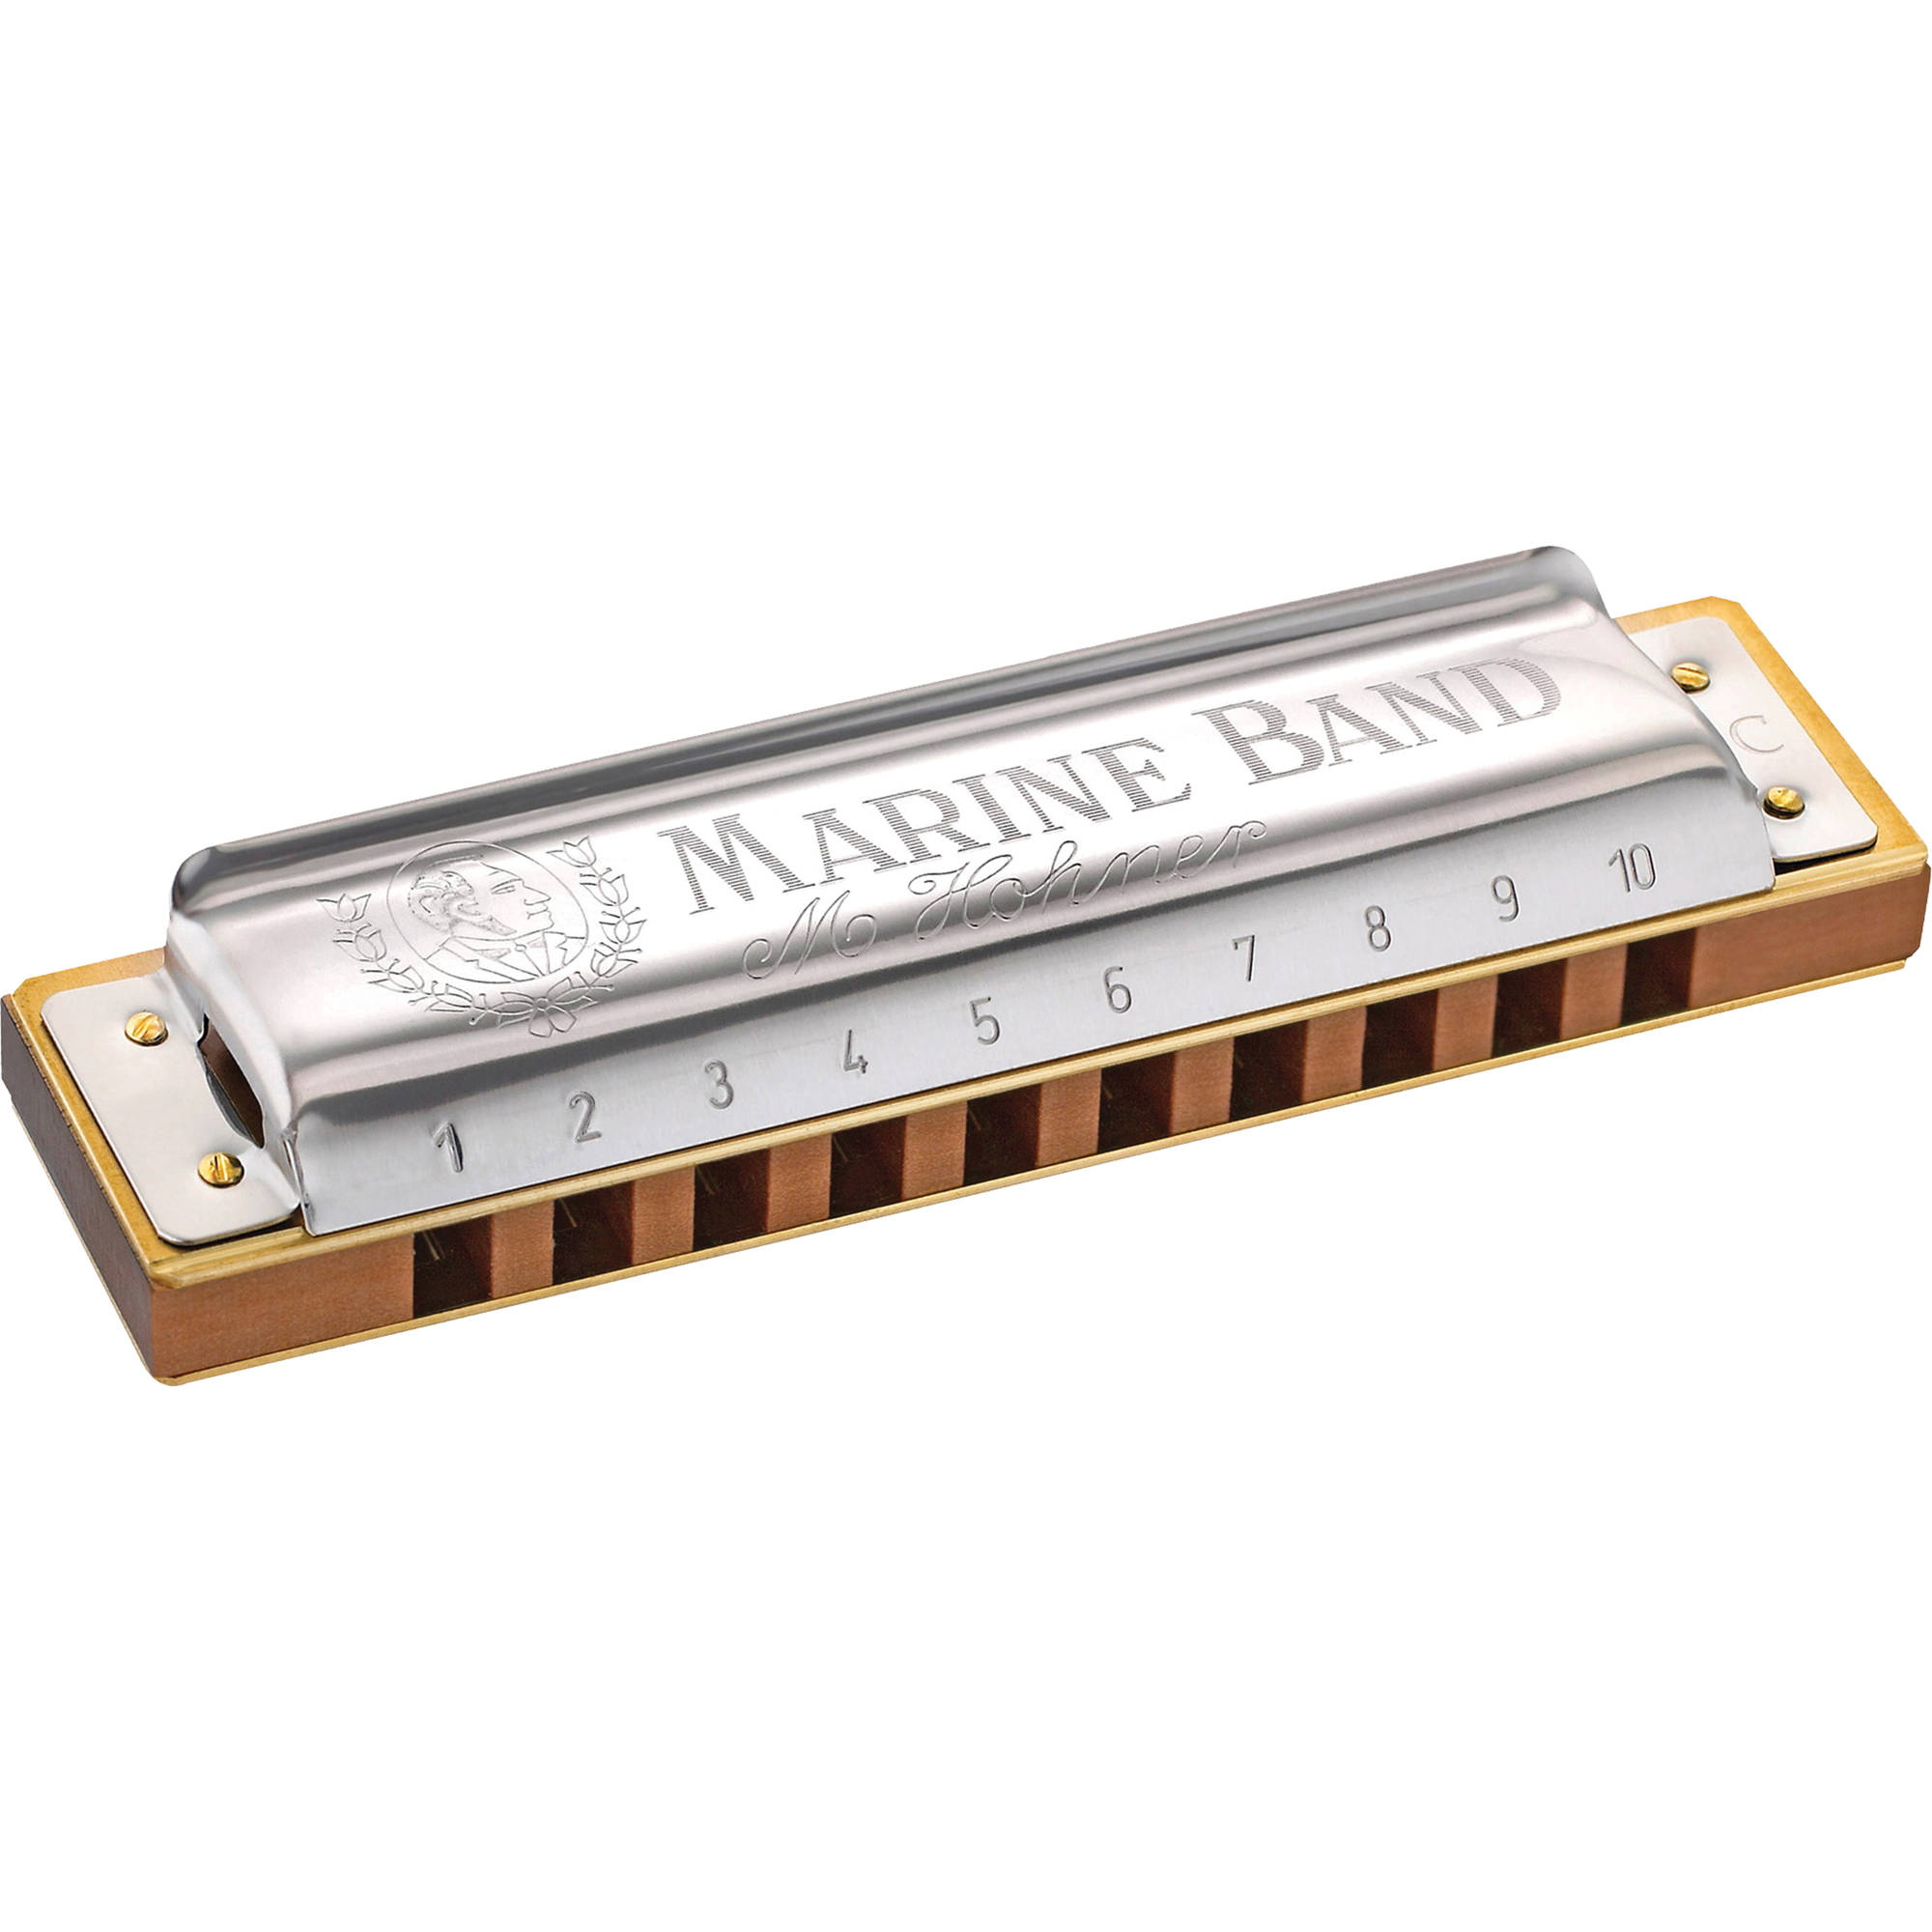 hohner hohner 1896 marine band harmonica with retail box mbc c. Black Bedroom Furniture Sets. Home Design Ideas